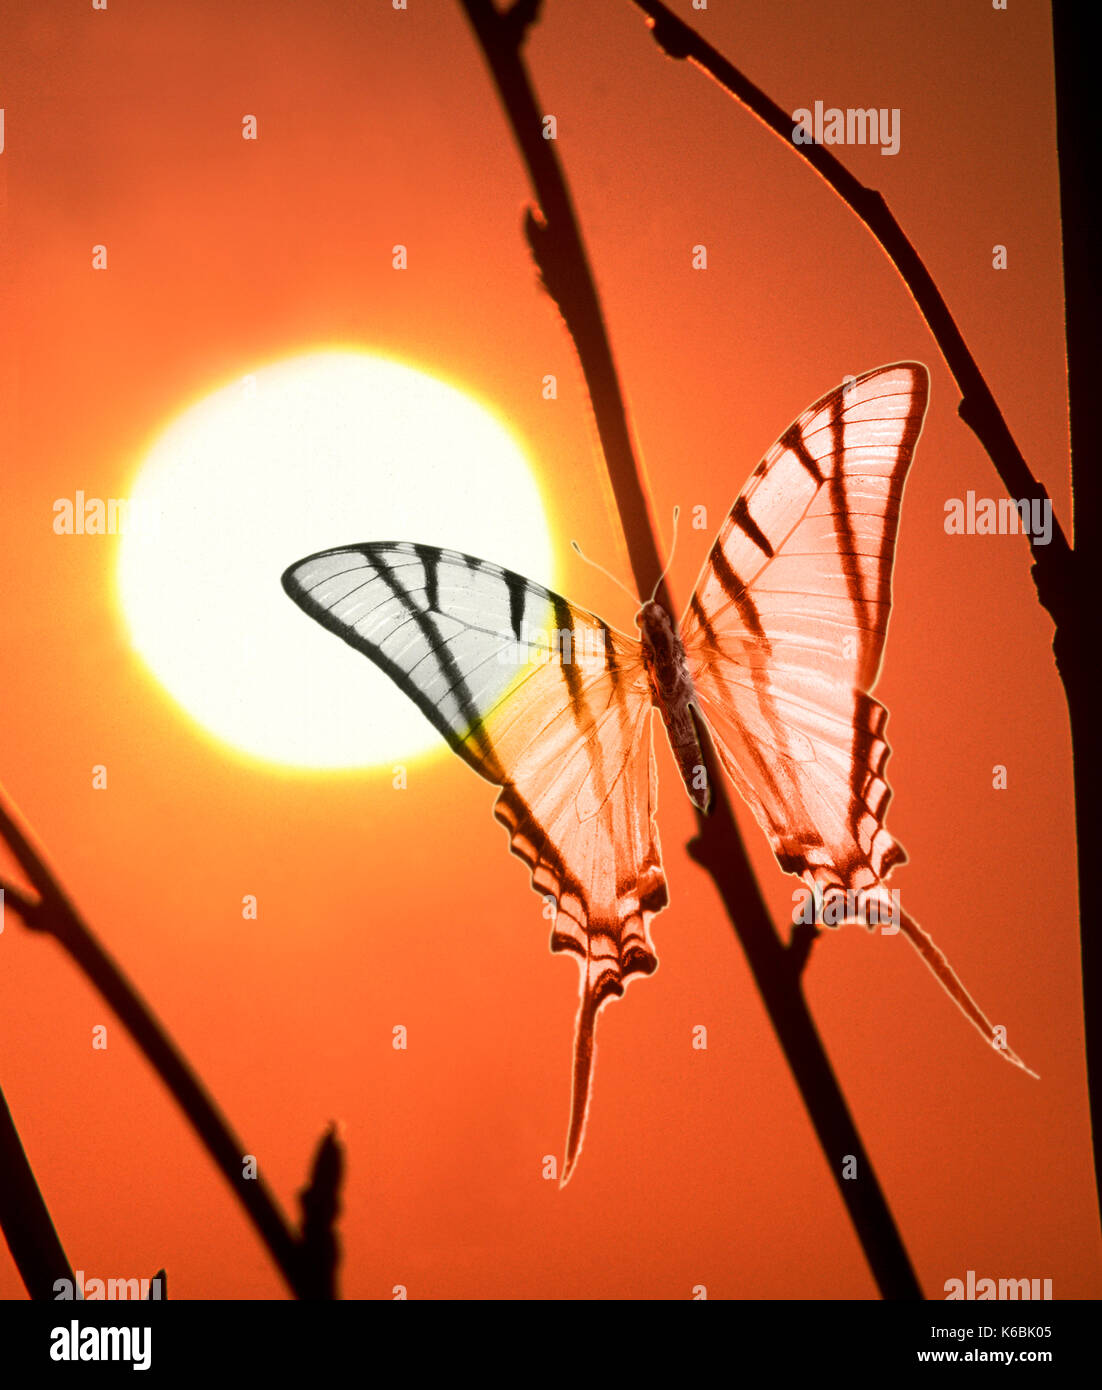 Papilio protesilaus butterfly against sunset, digitally enhanced - Stock Image